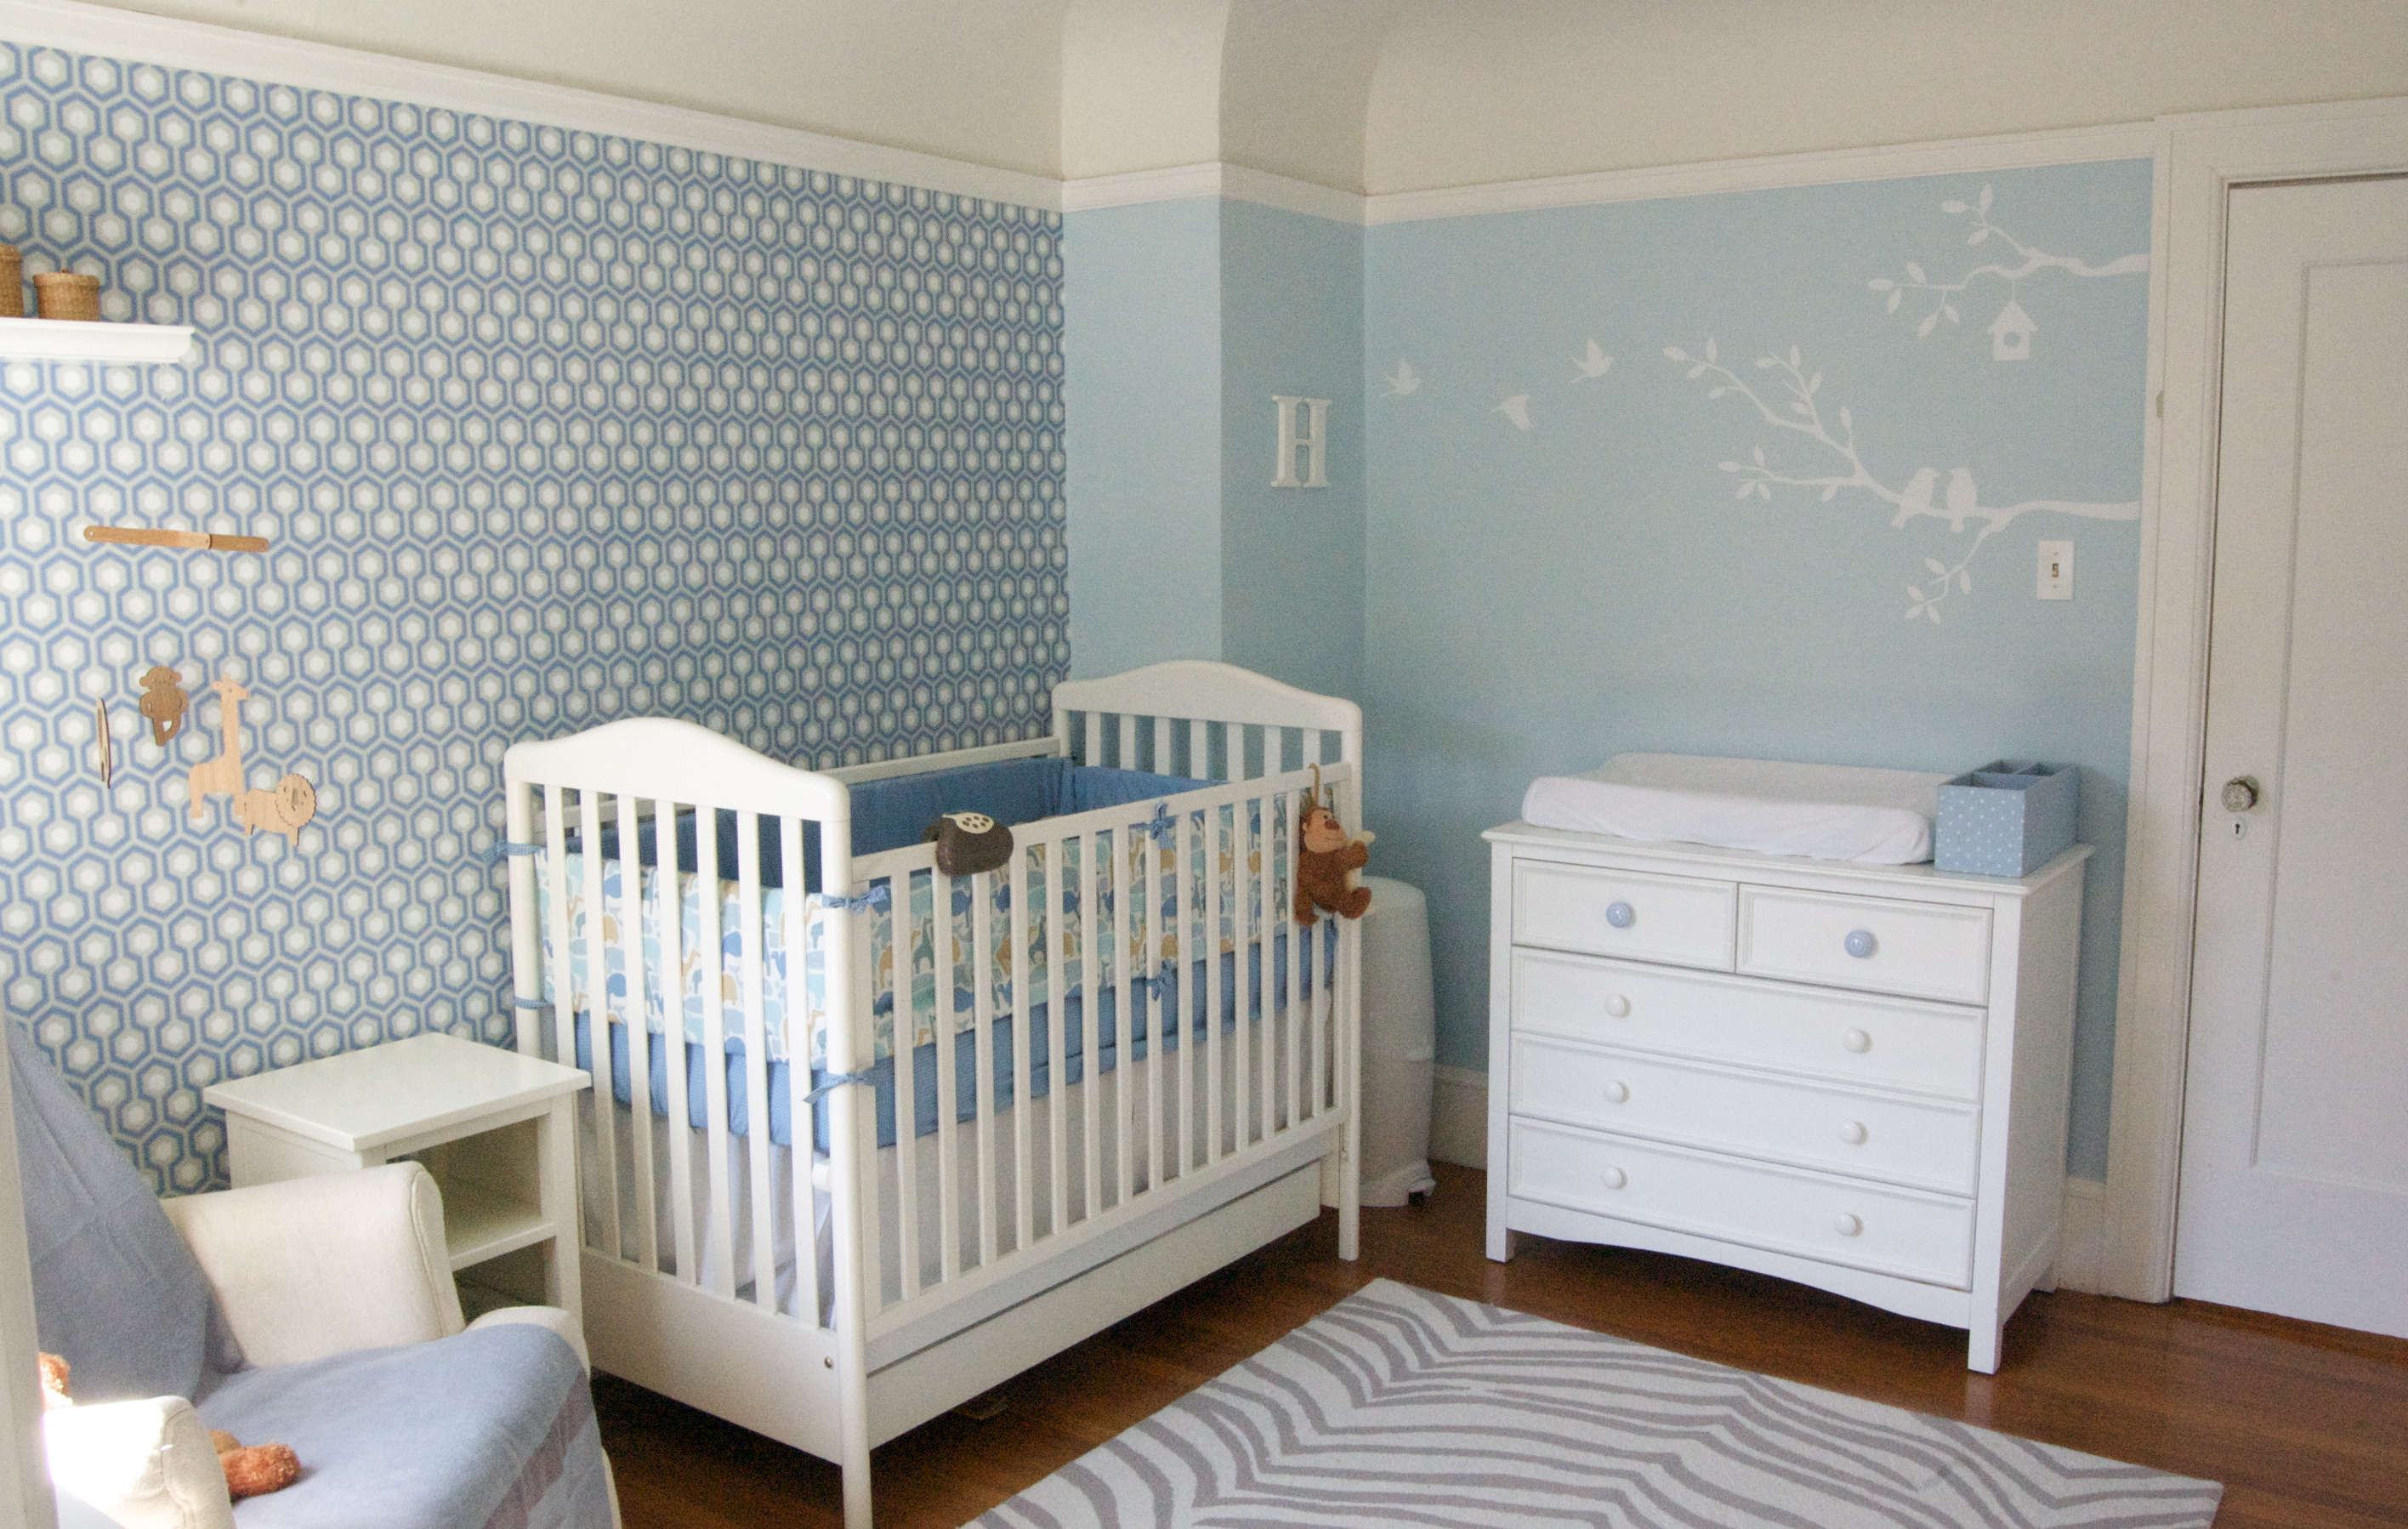 1000 images about baby room ideas on pinterest for Baby room decoration